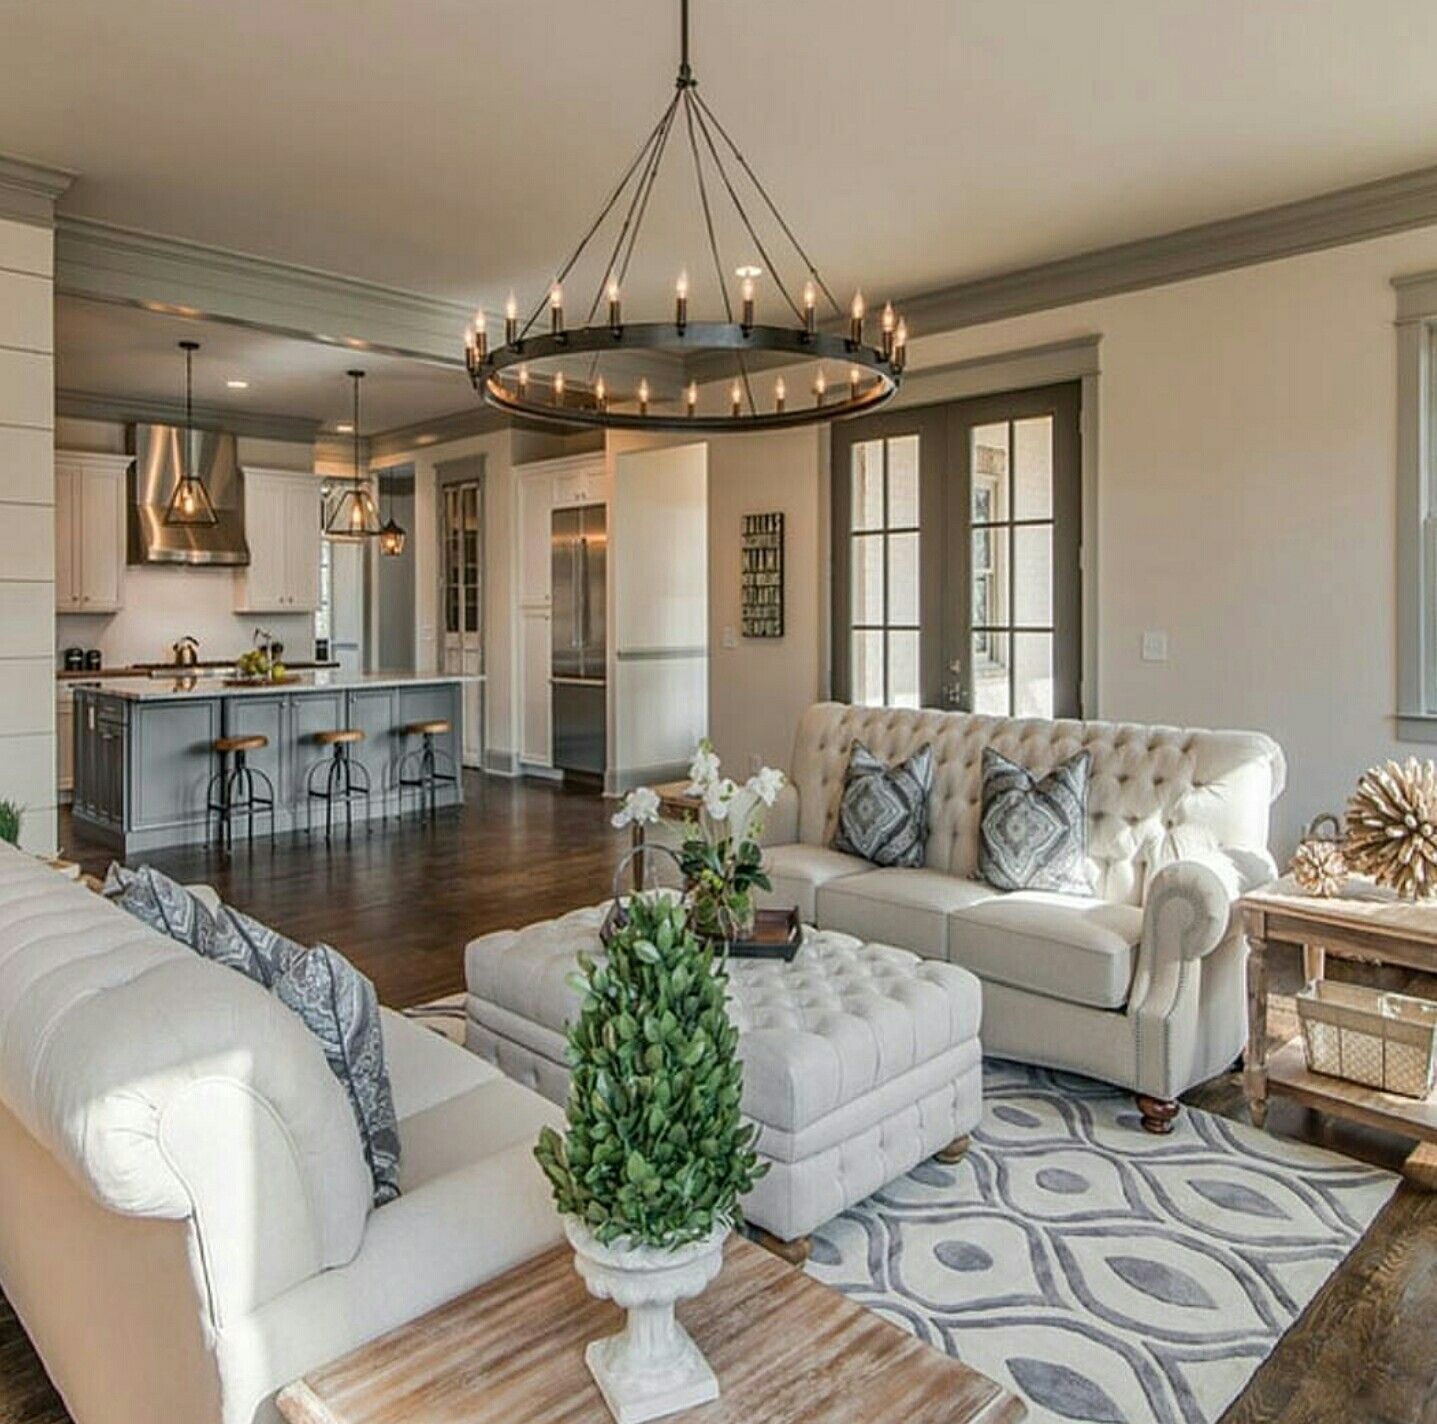 Decorate Living Room And Dining Room Combo: EXQUISITE LIVING ROOMS By Karla Jones